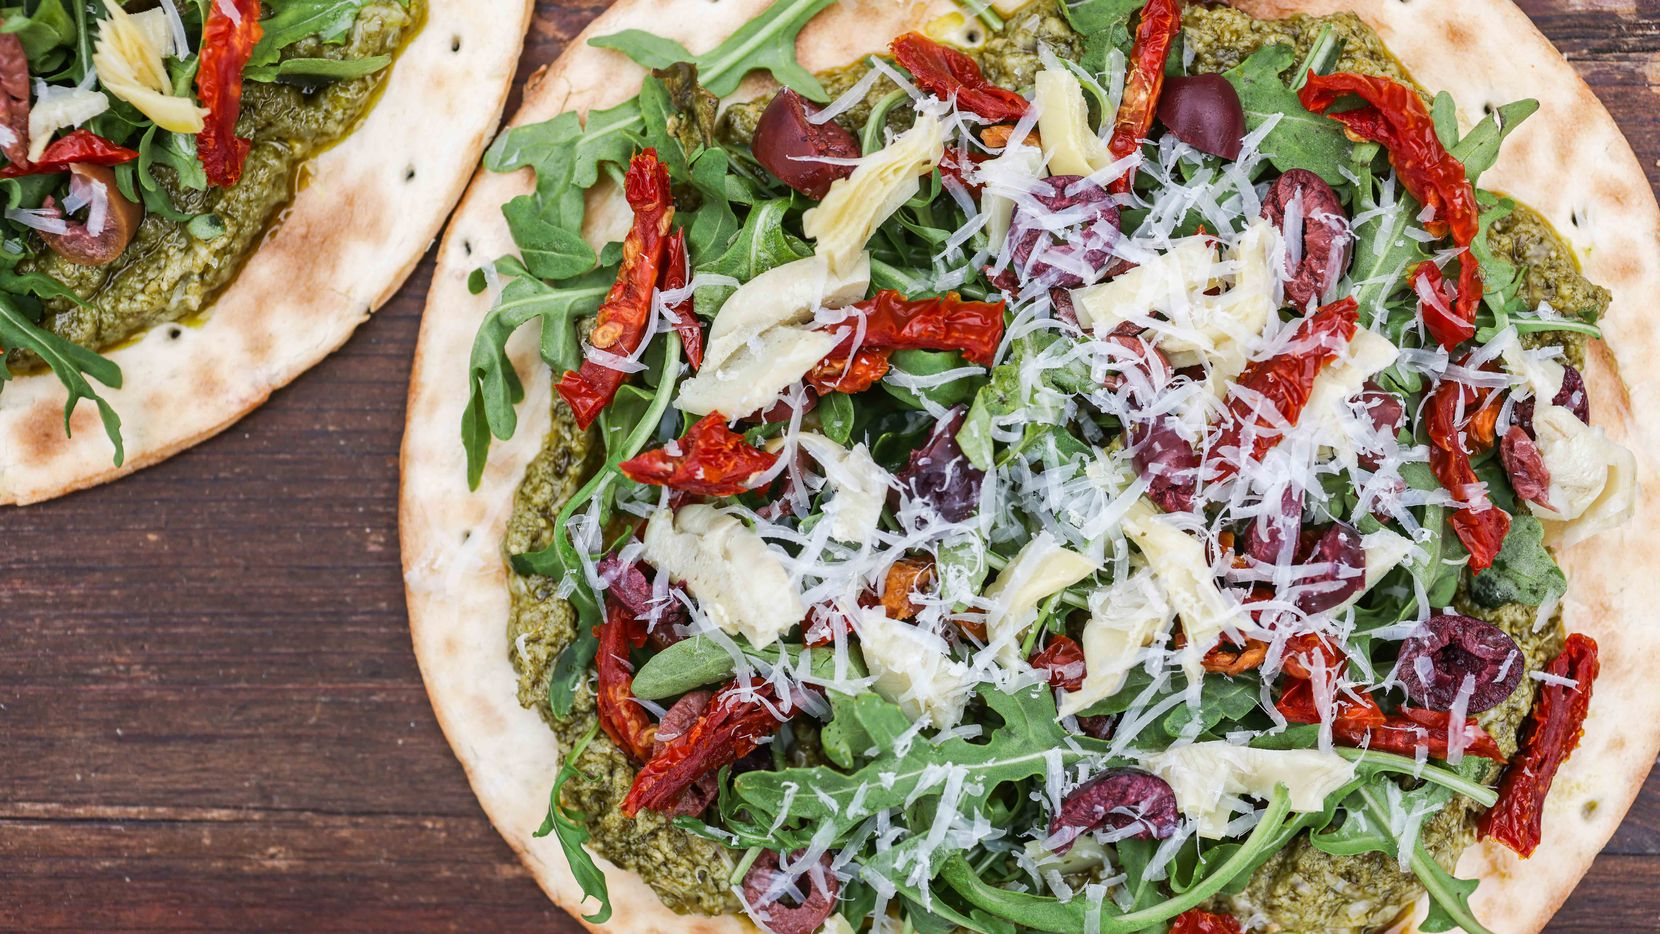 Pesto on Pizza Crust